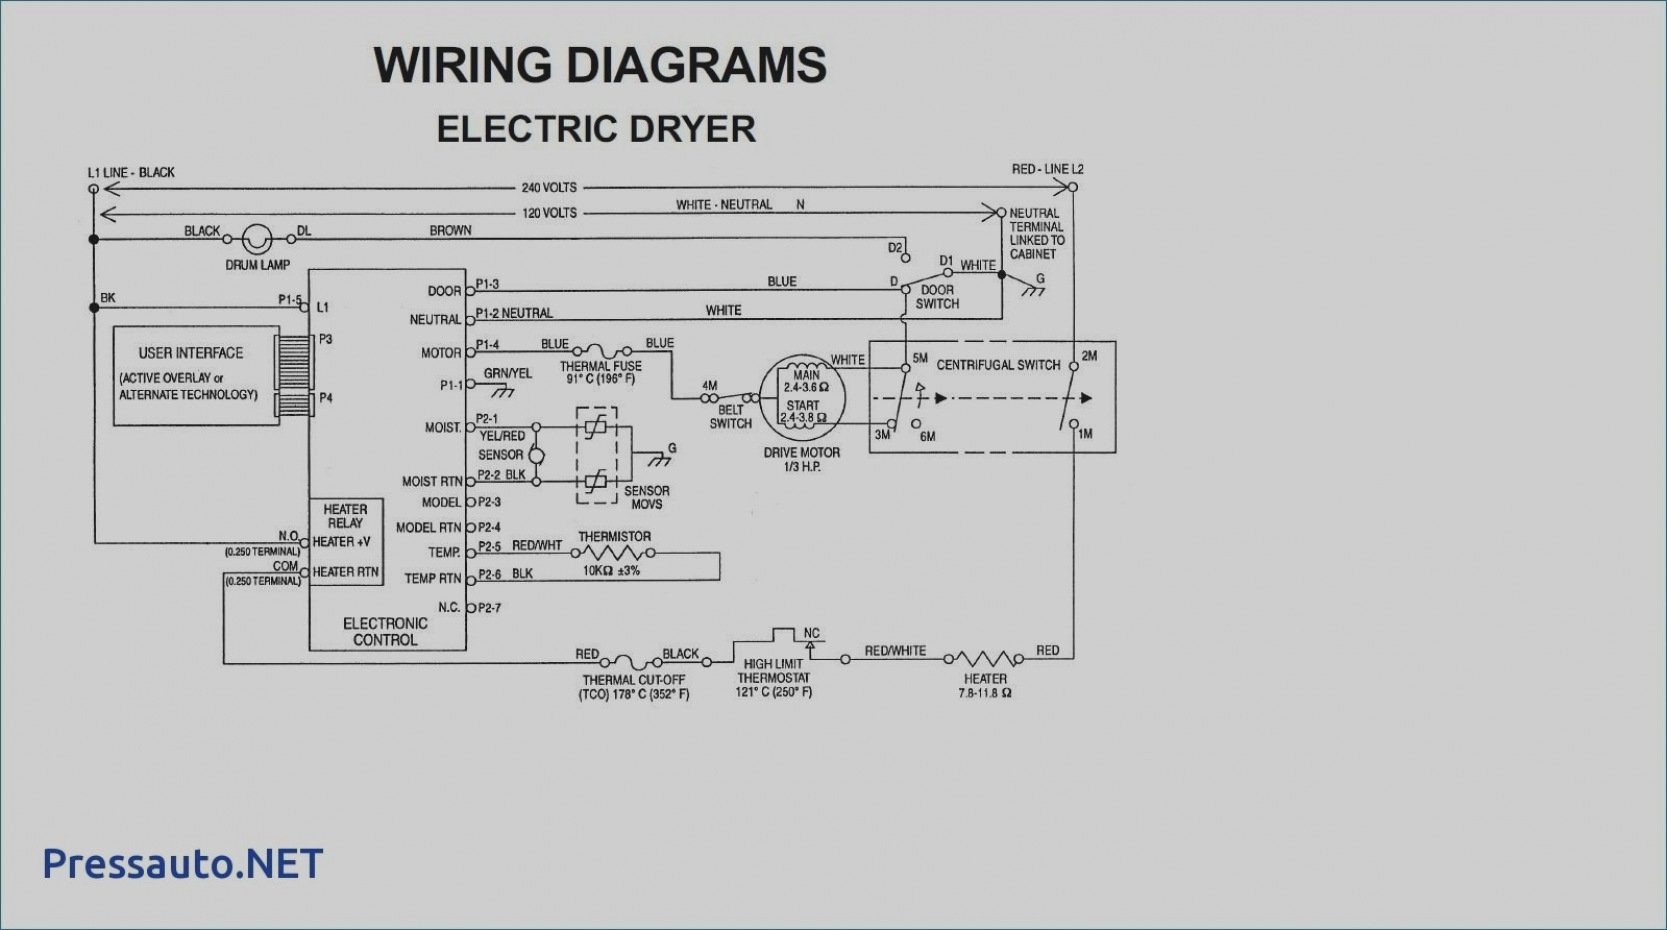 Wire Diagram For Whirlpool Dryer